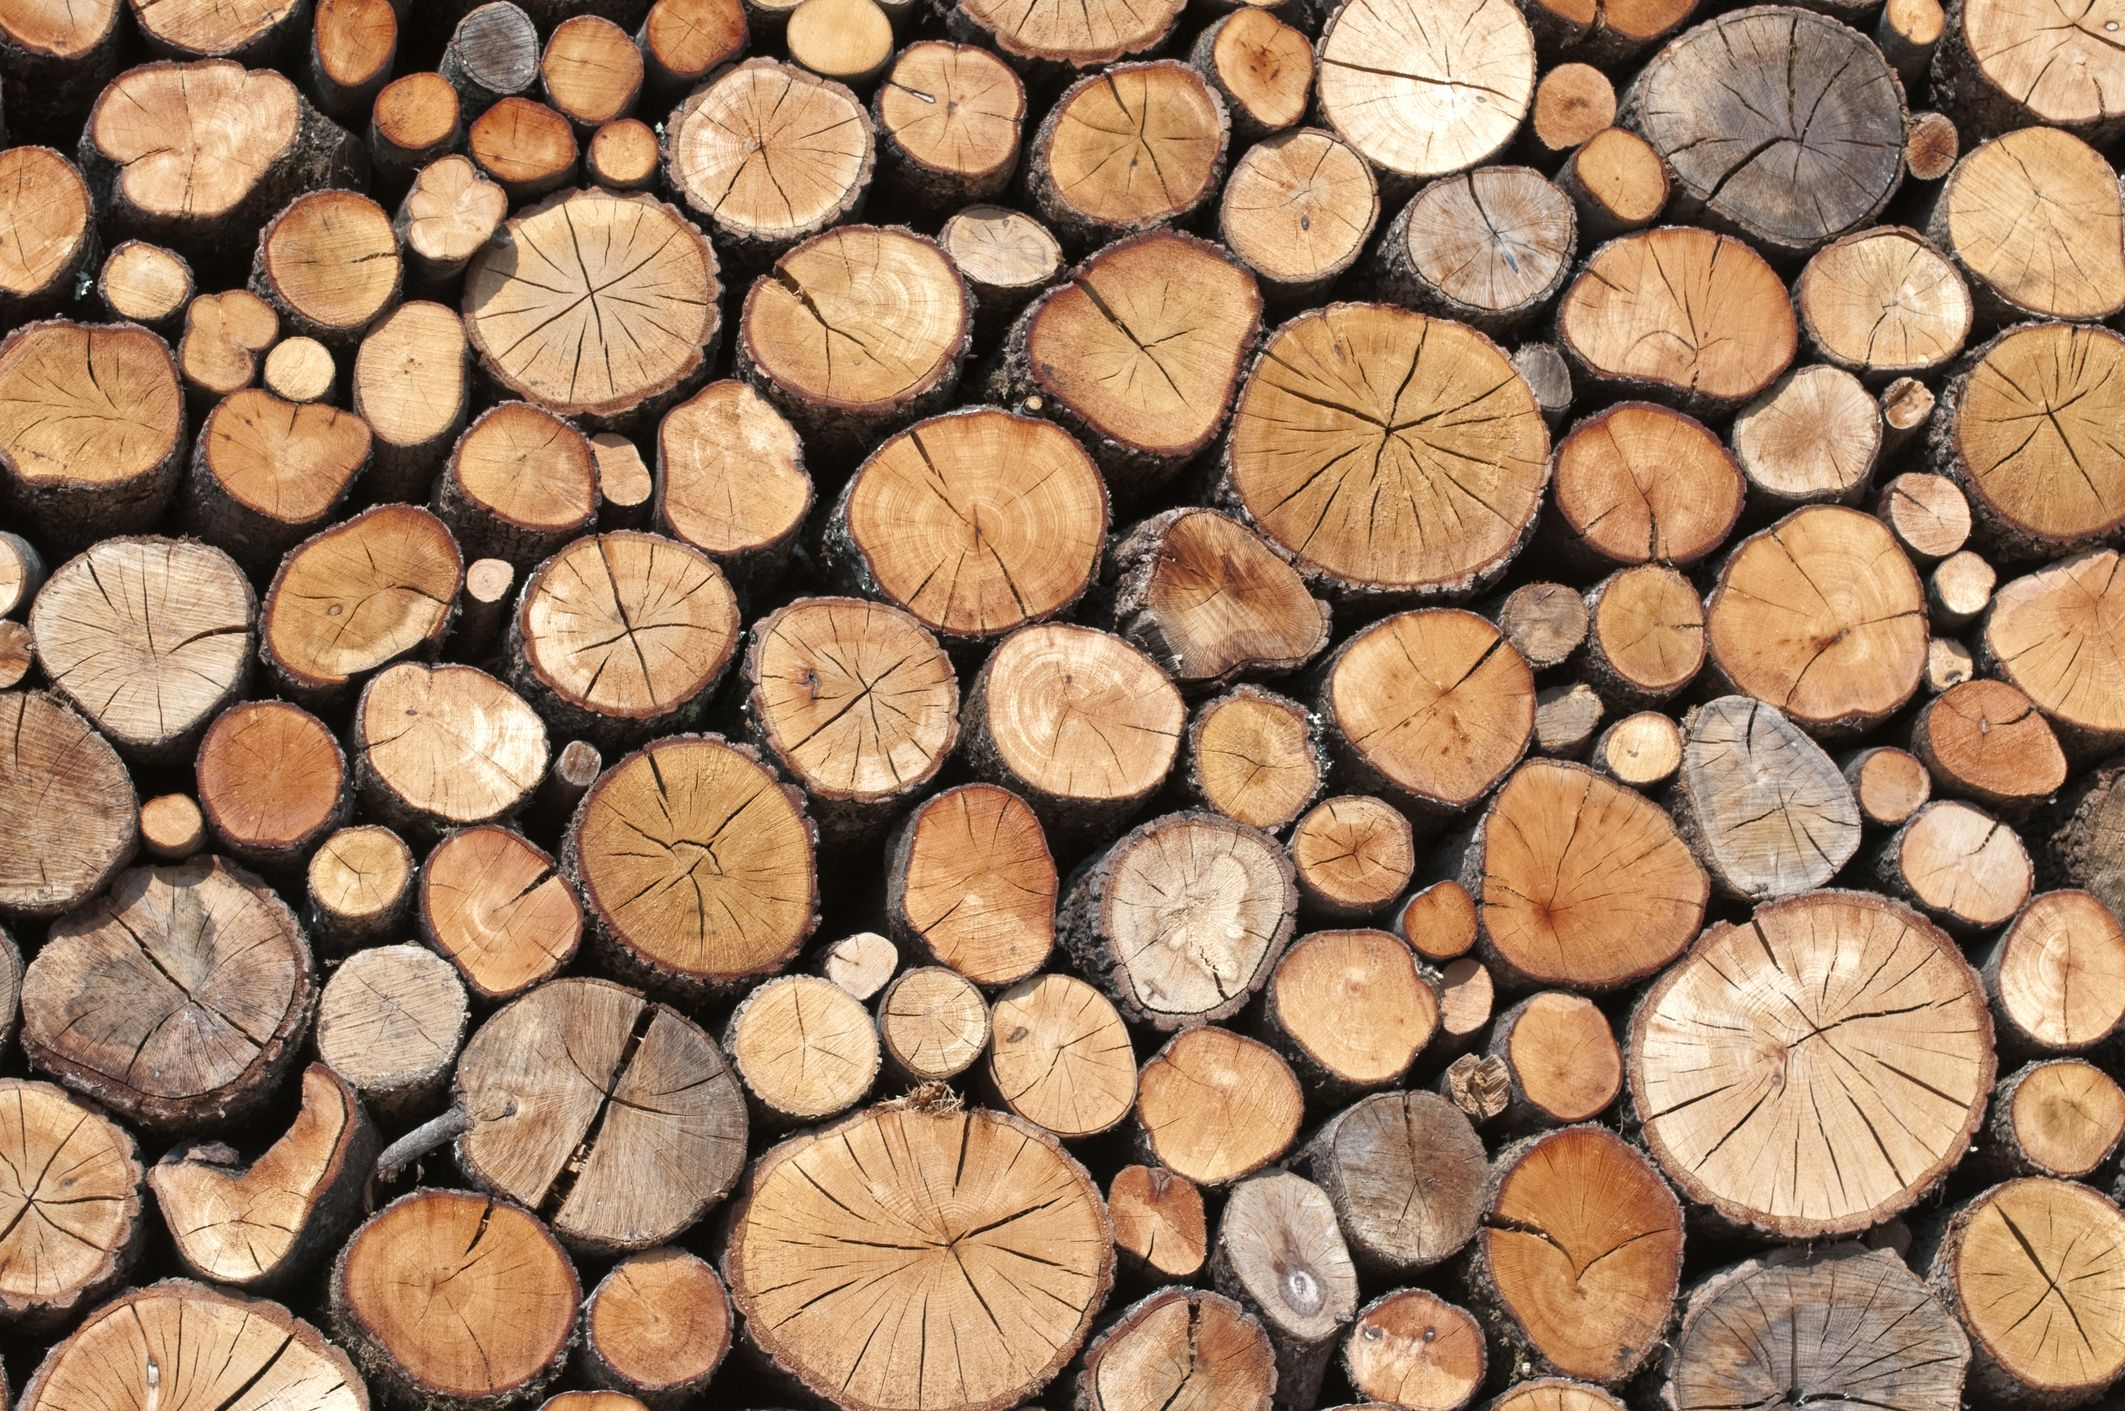 8 Kinds of Wood You Not to Burn  Bad Firewood You Should Never Use